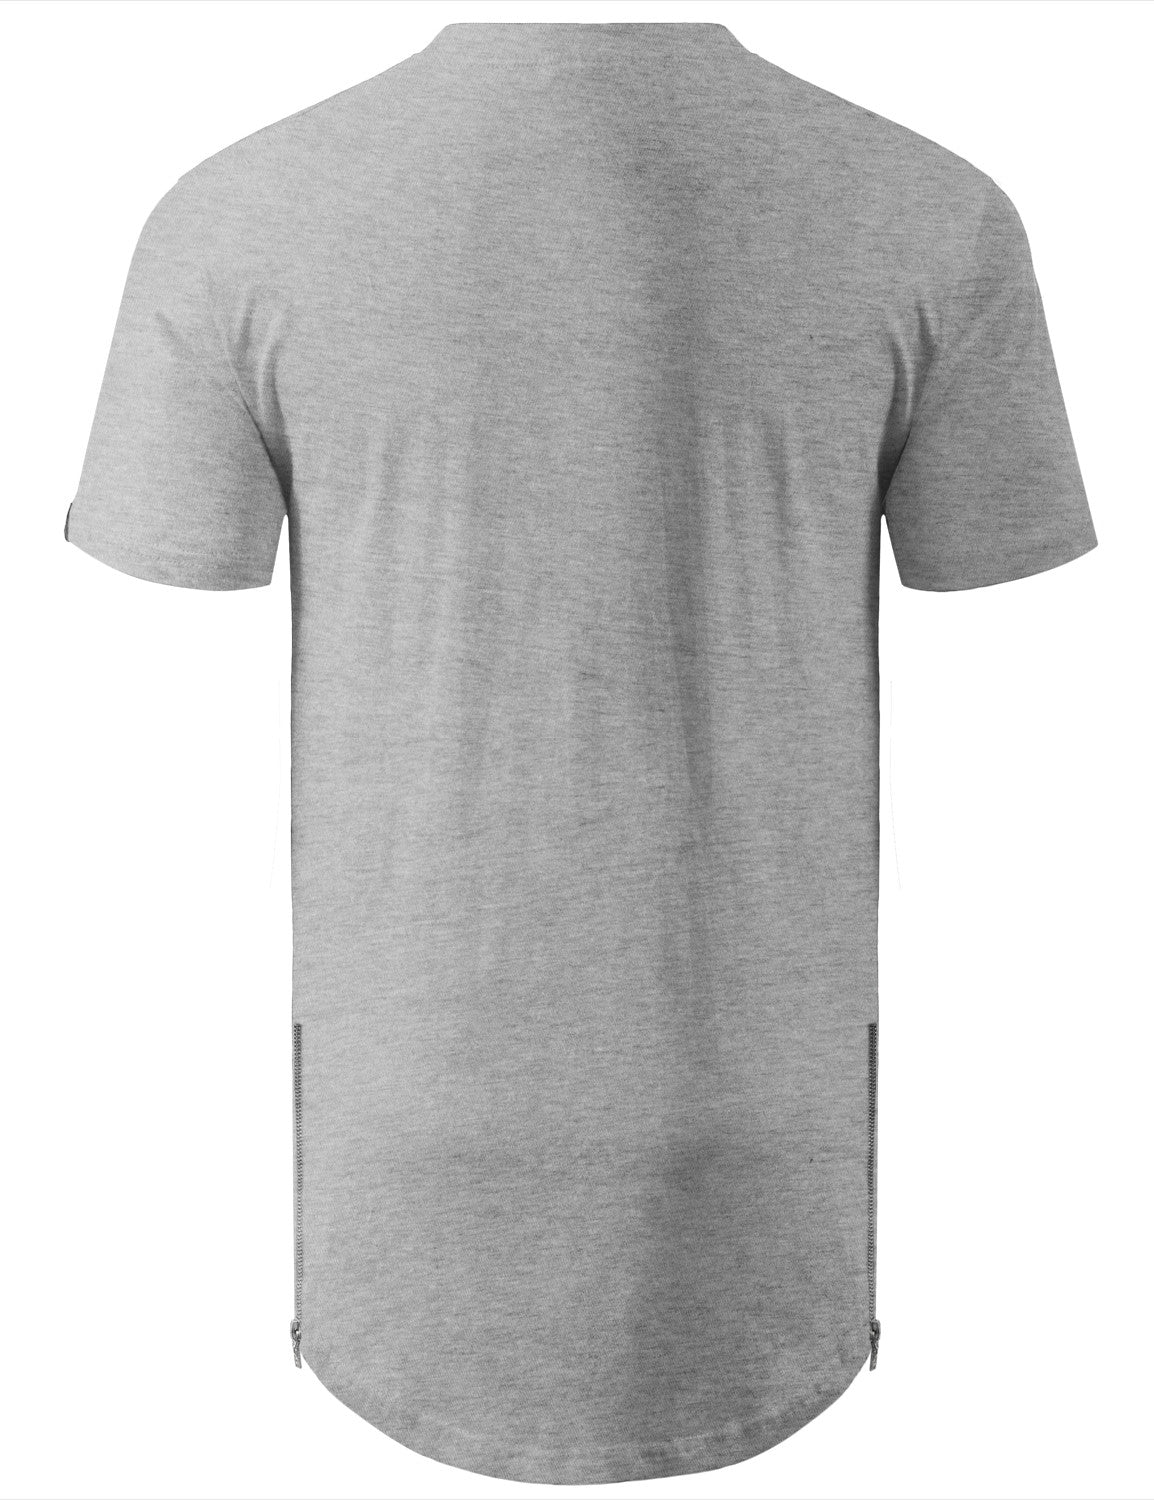 HGREY Marled Longline Crewneck Tshirts with Side Zipper